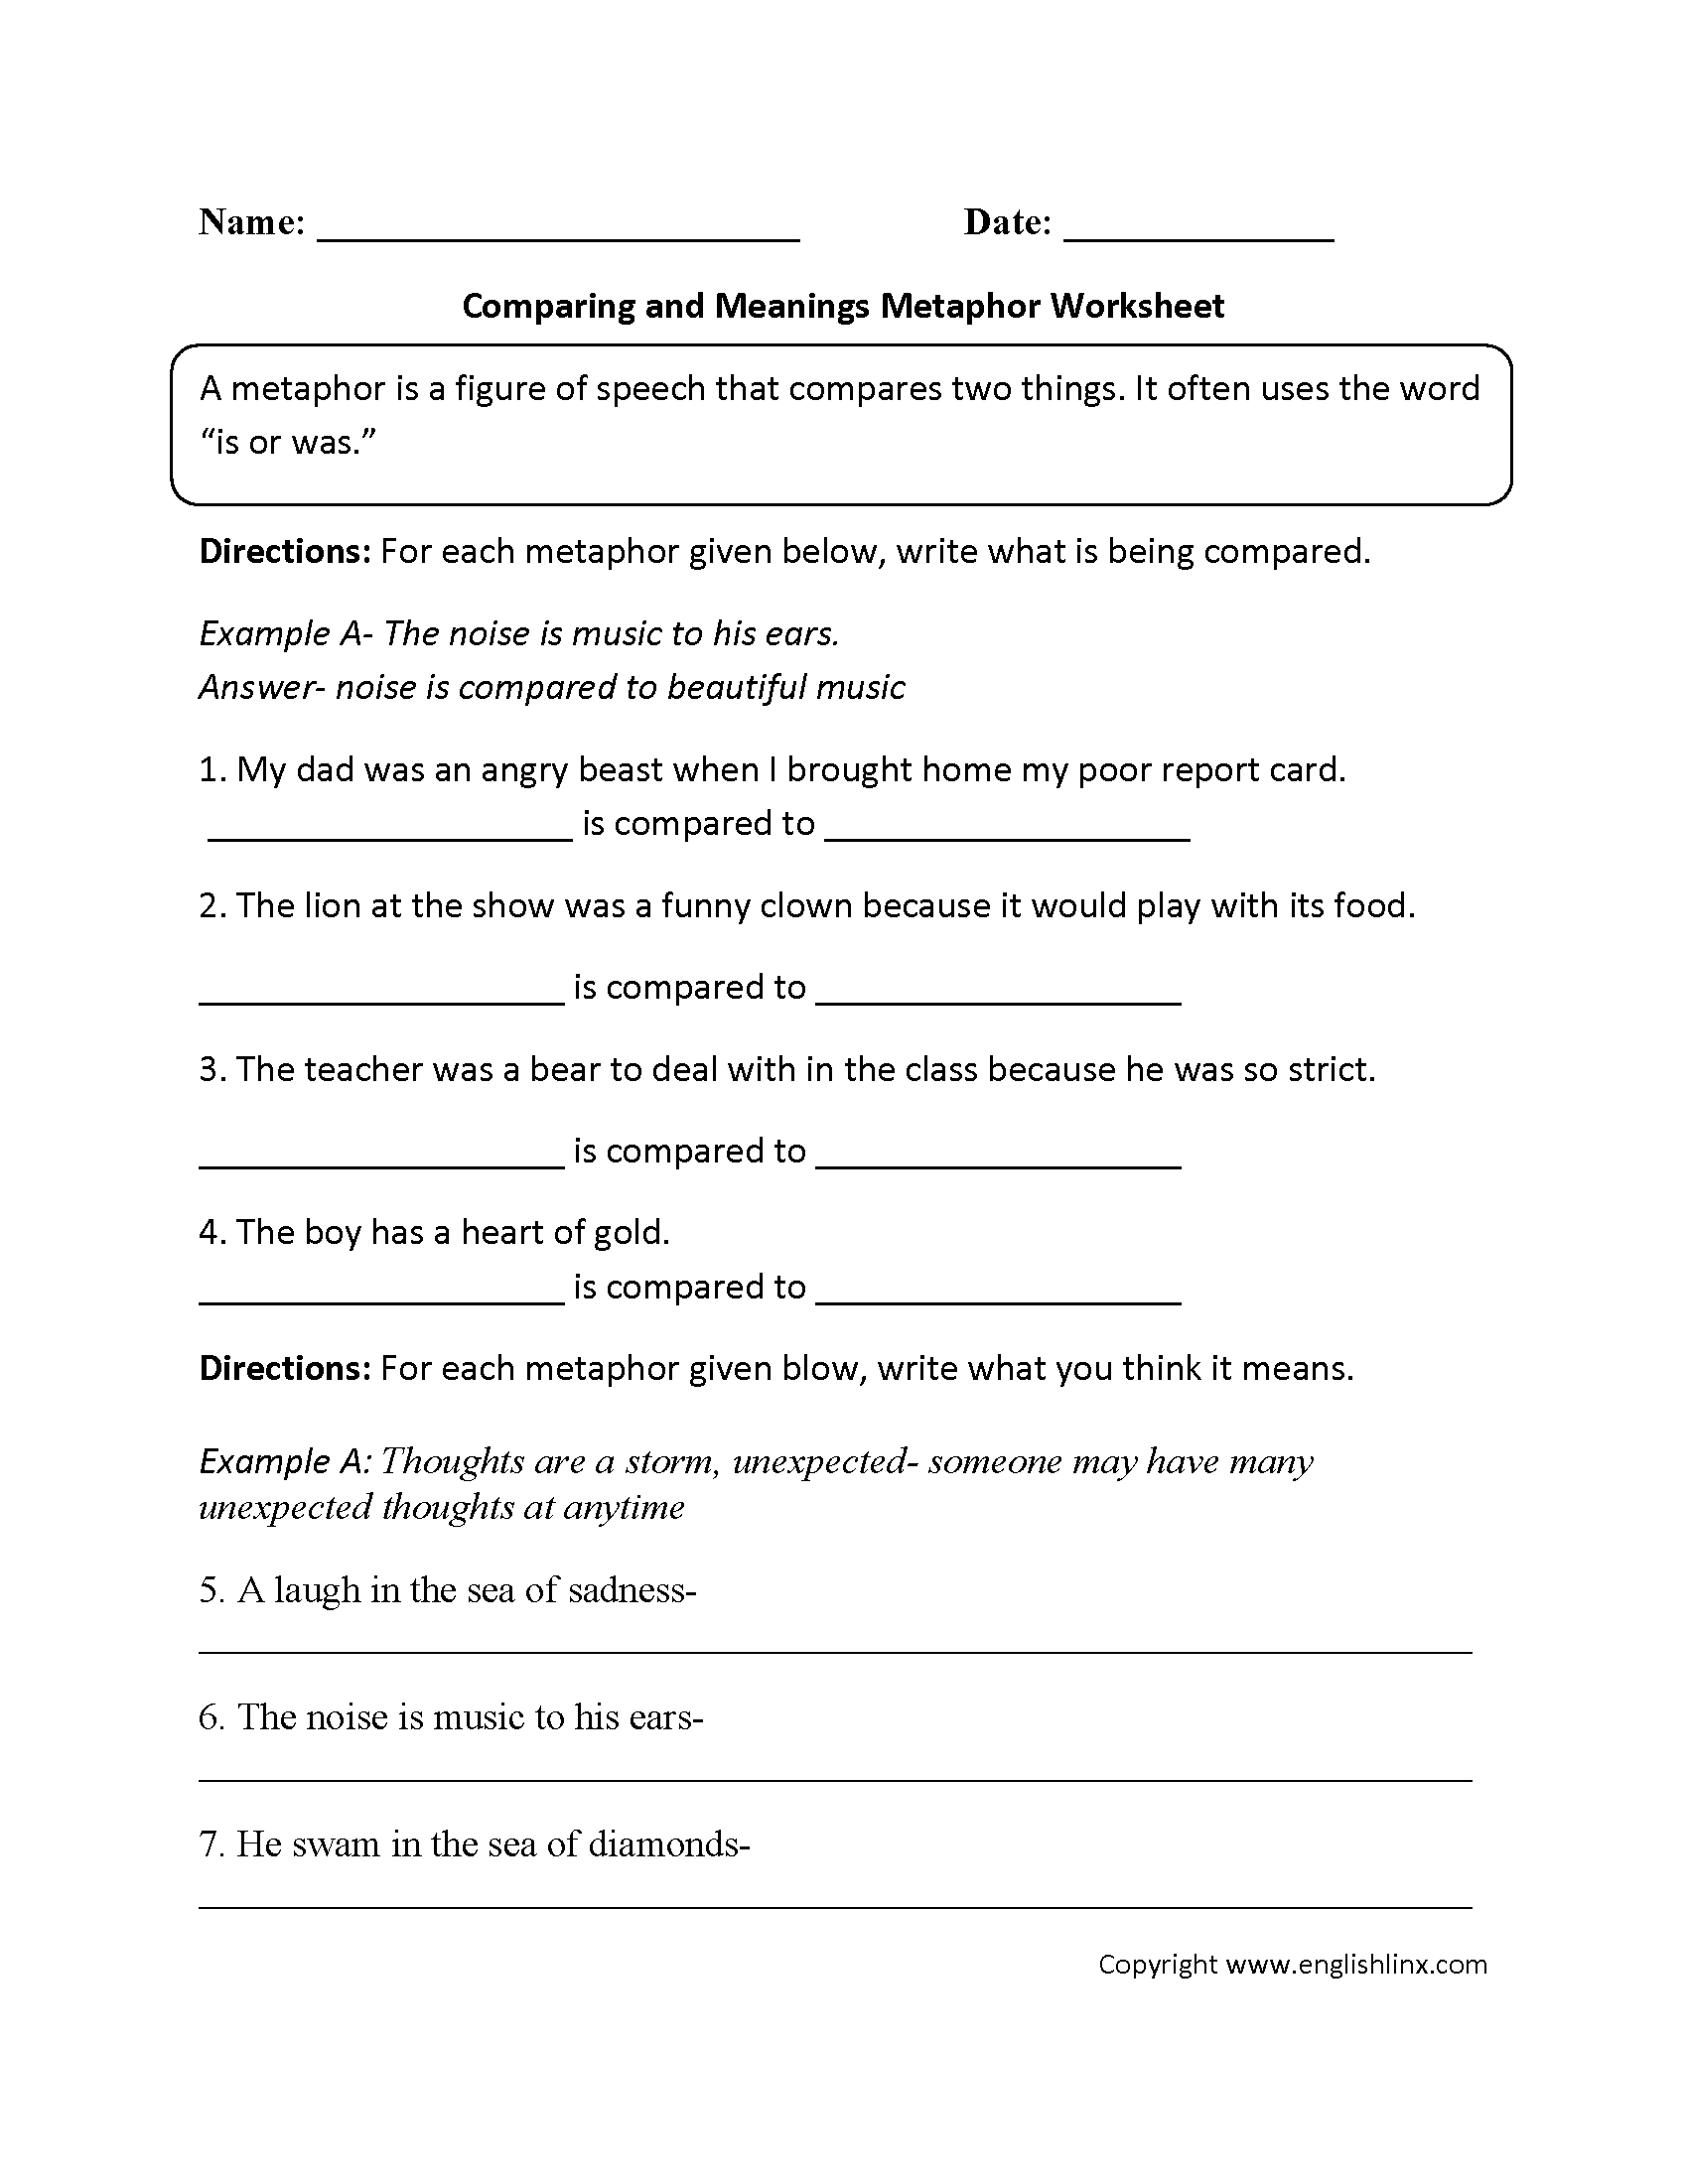 worksheet Metaphors And Similes Worksheets englishlinx com metaphors worksheets metaphor worksheet